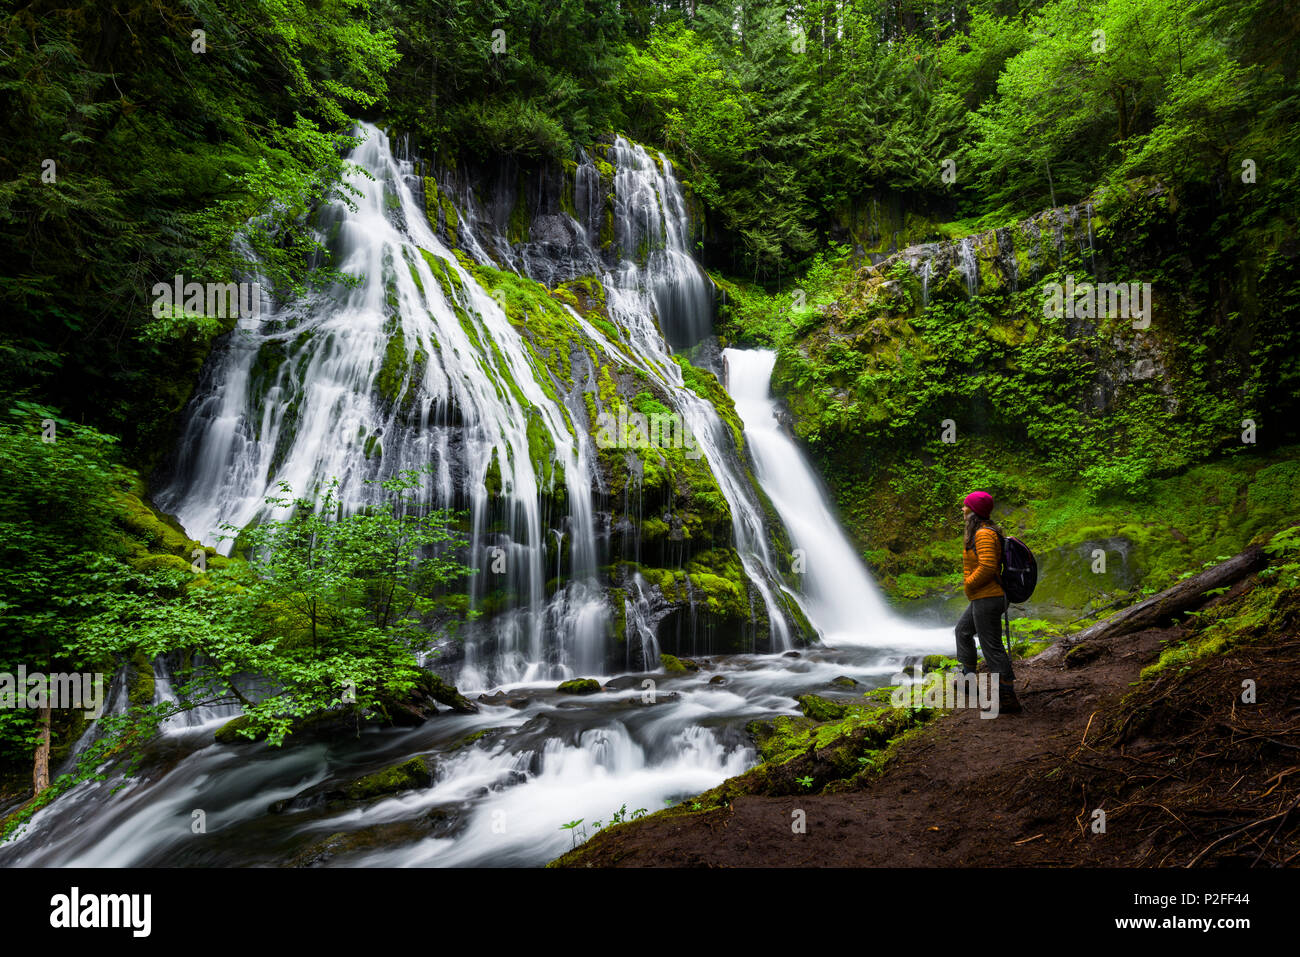 Panther Falls in souther Washington. The lush greenery and waterfalls of the Pacific Northwest are a must visit. - Stock Image